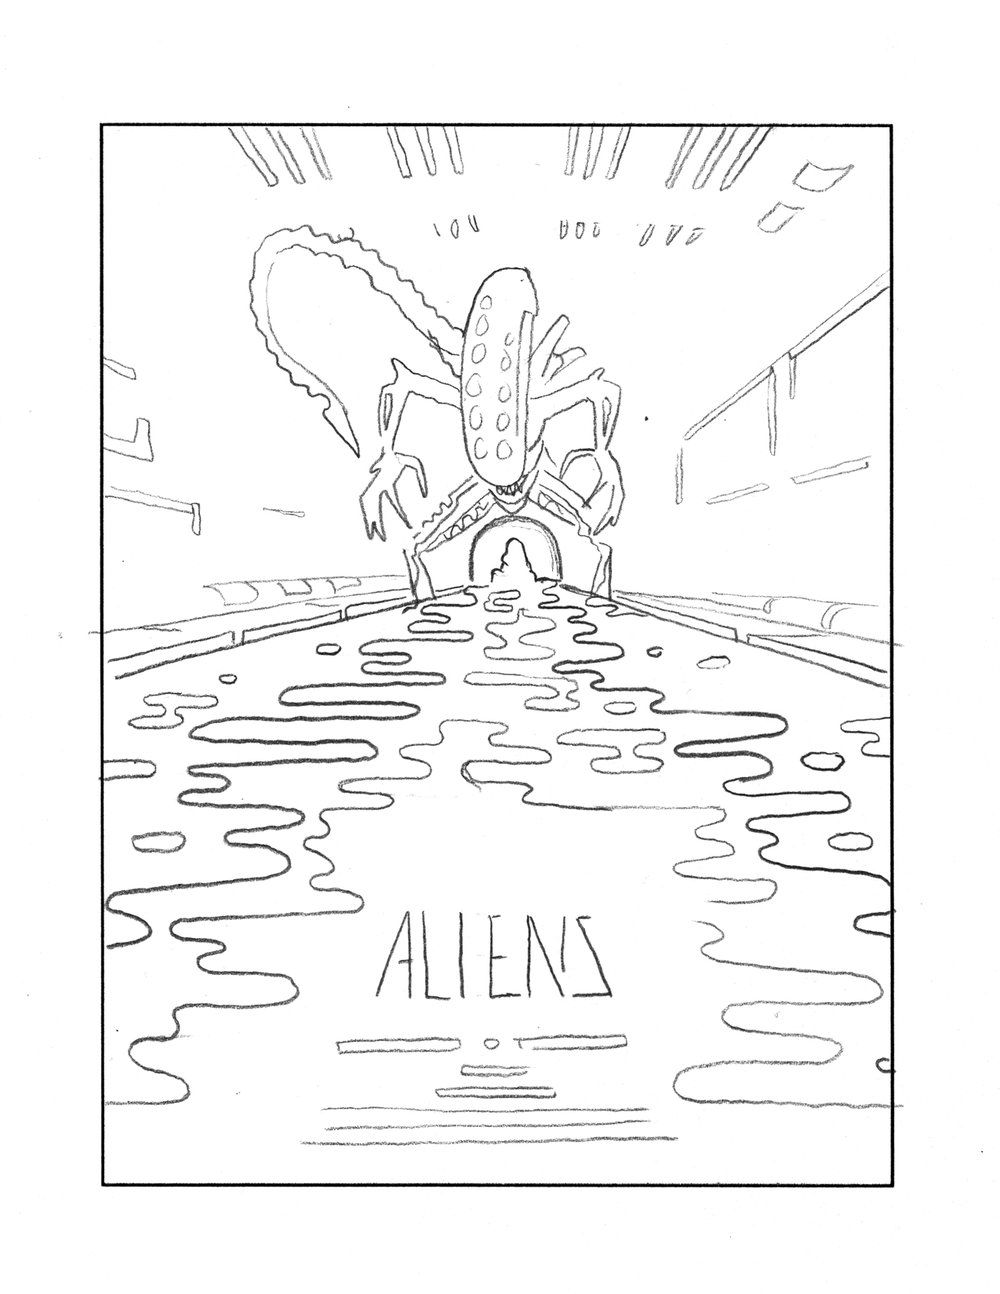 ALIENS_Roughs-03a.jpg